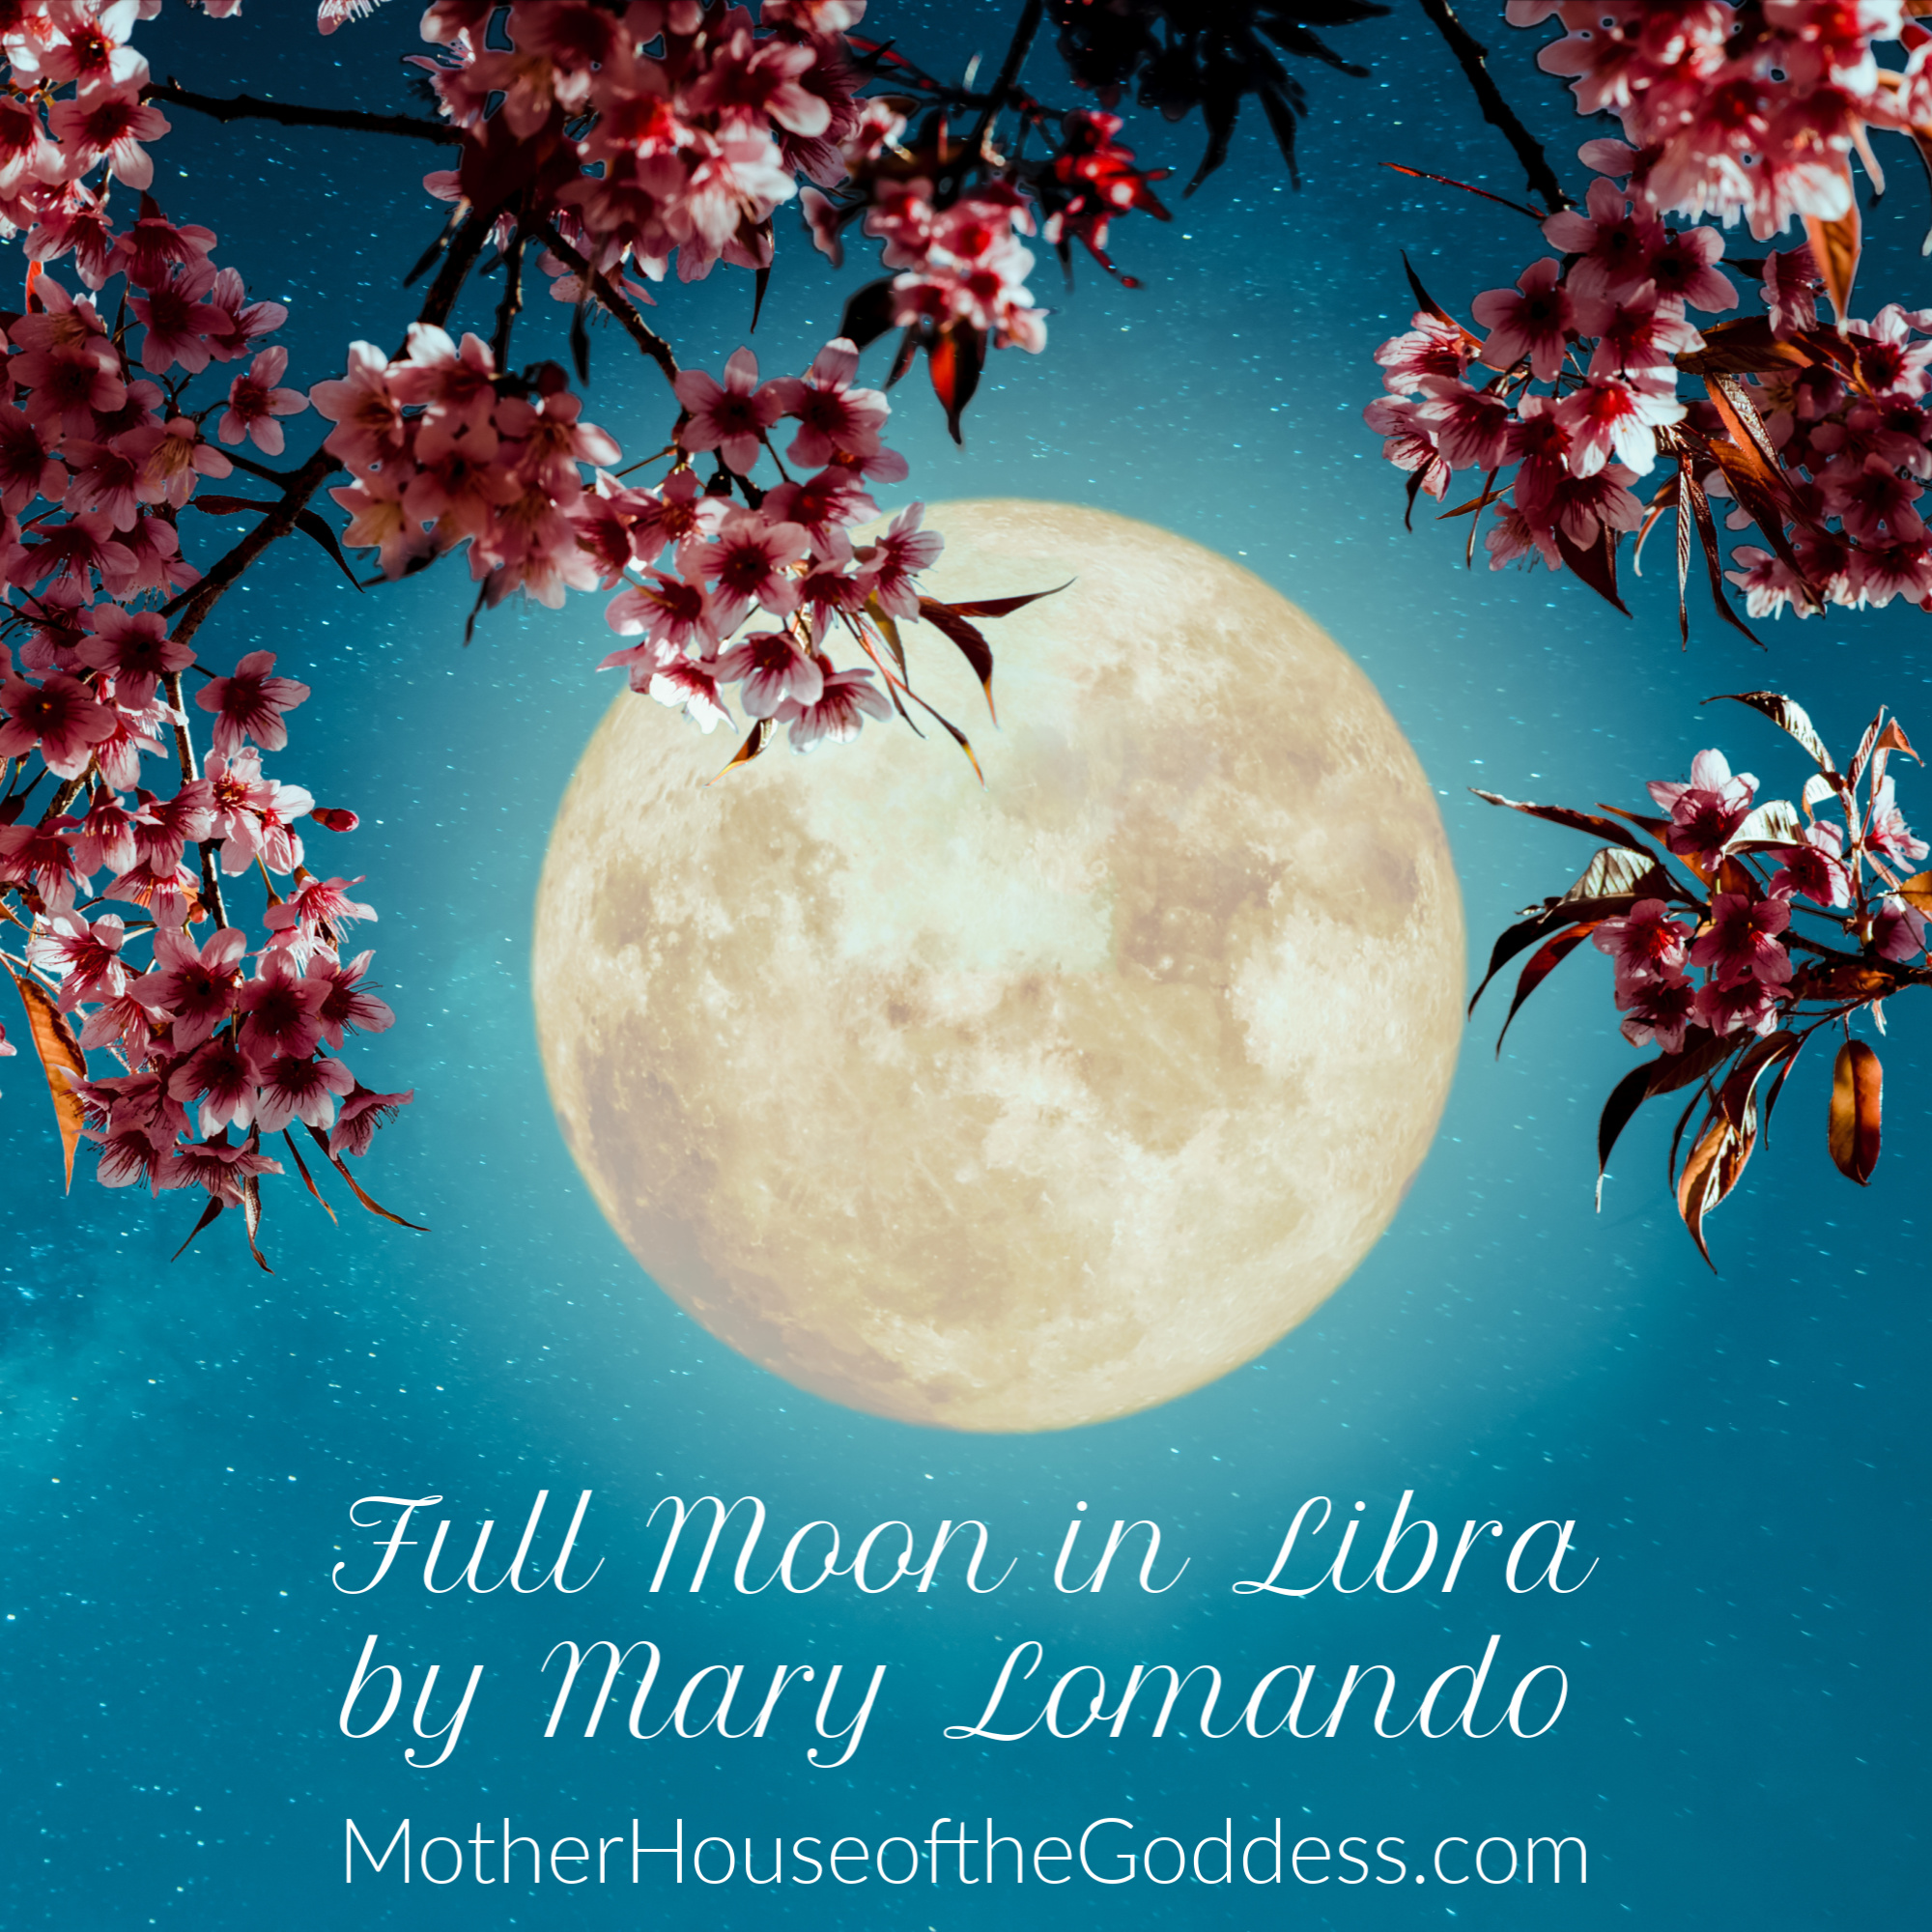 Astrology Update – Full Moon in Libra April 19 by Mary Lomando